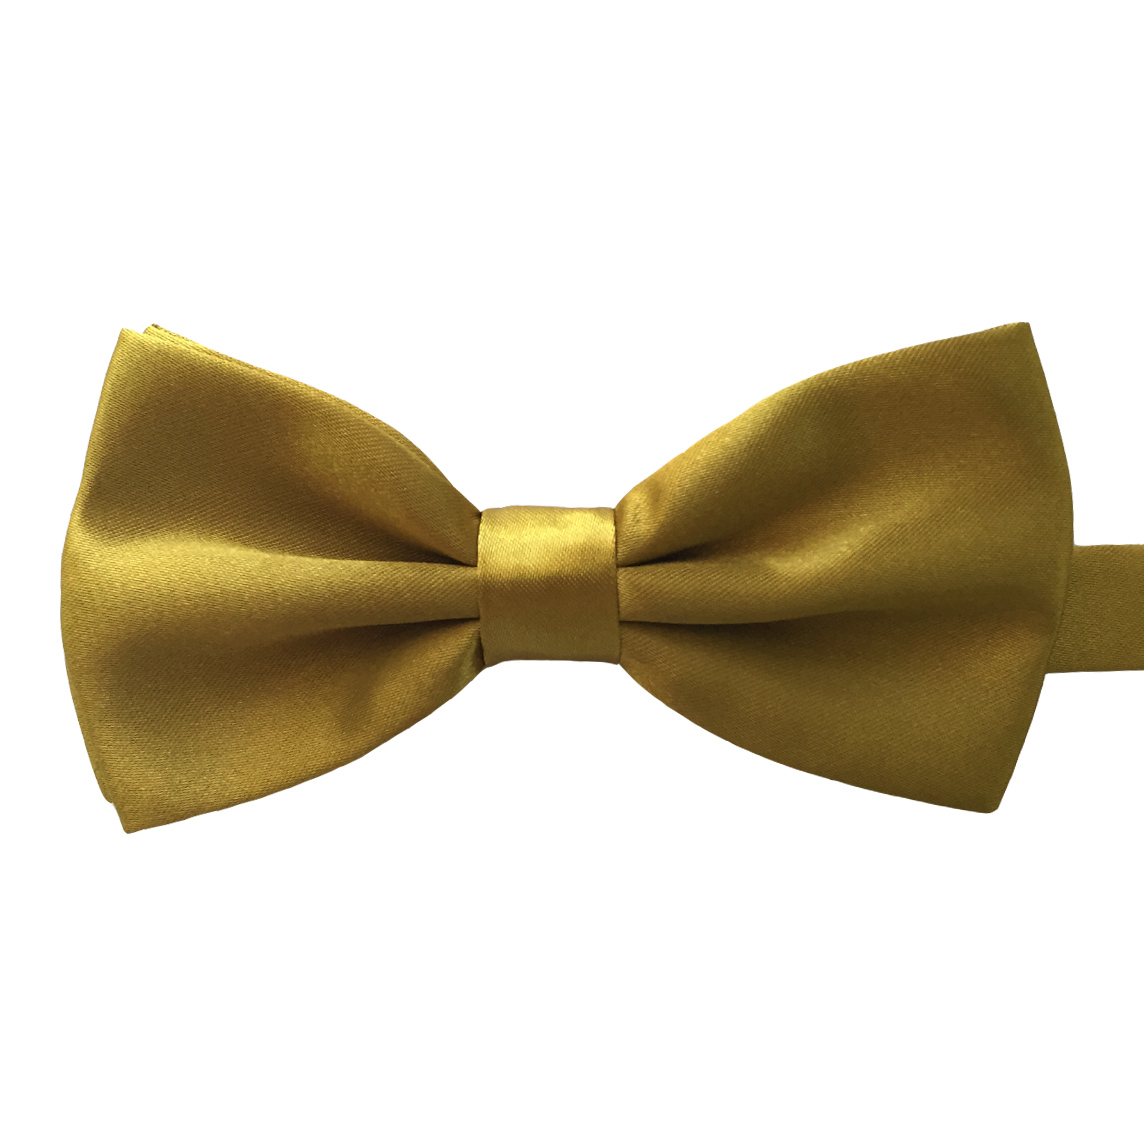 buttered rum gold bow tie the tie rack australia shop